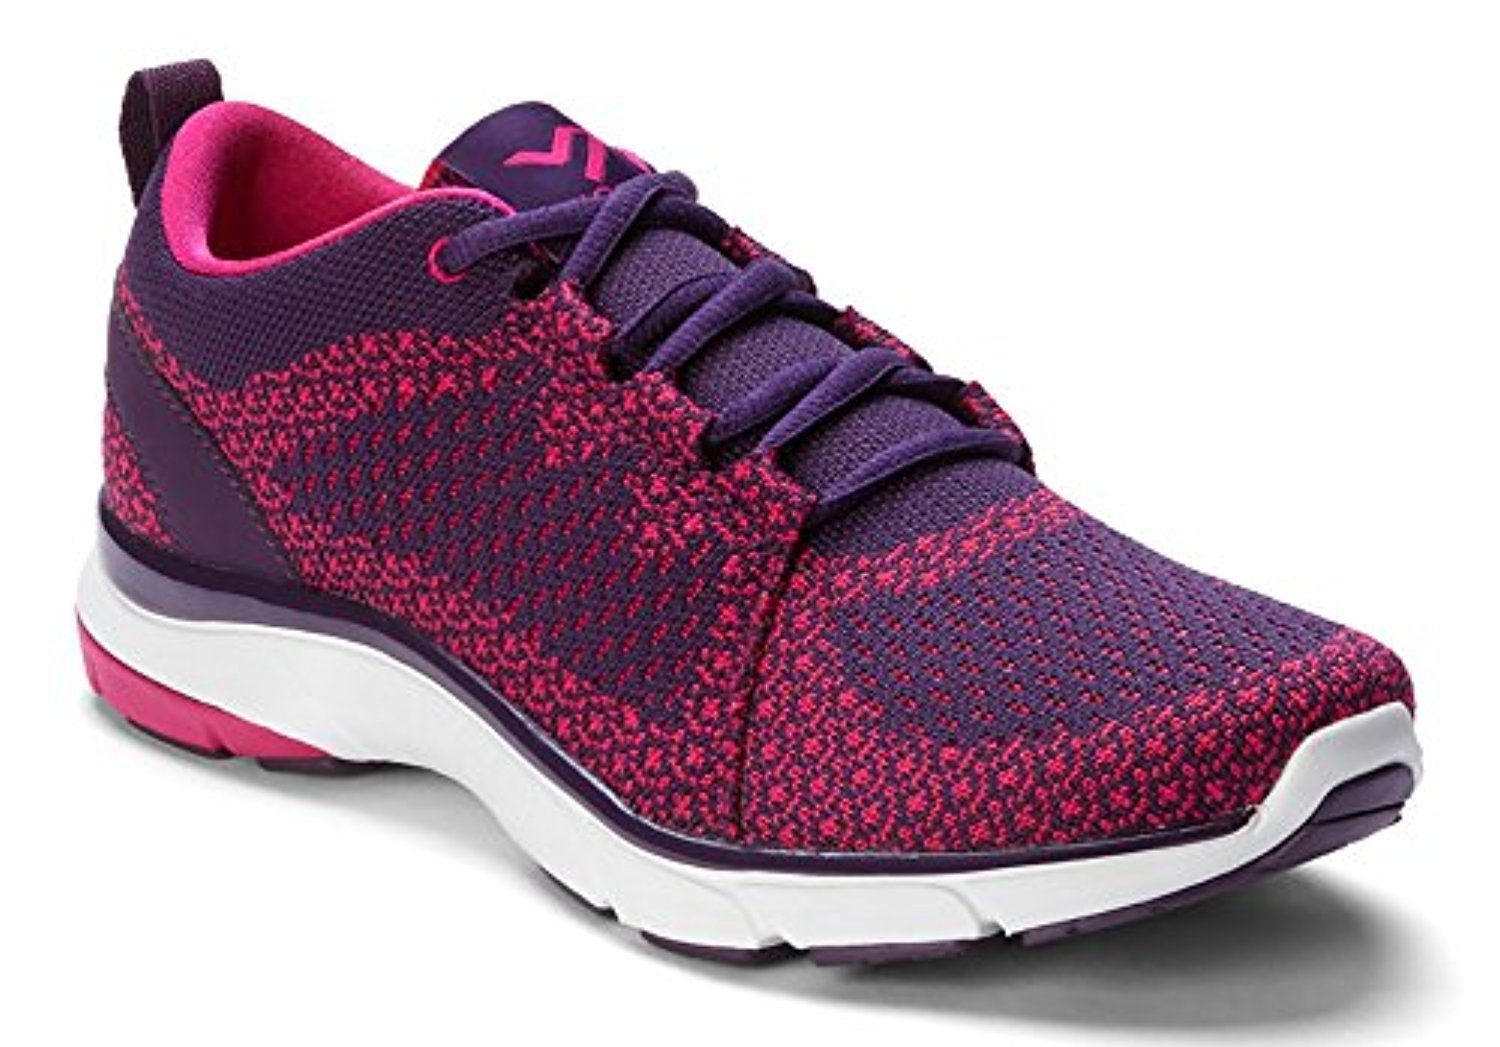 Vionic Women's Flex Sierra Lace-up B01N1URNM4 8 B(M) US|Dark Purple/Pink